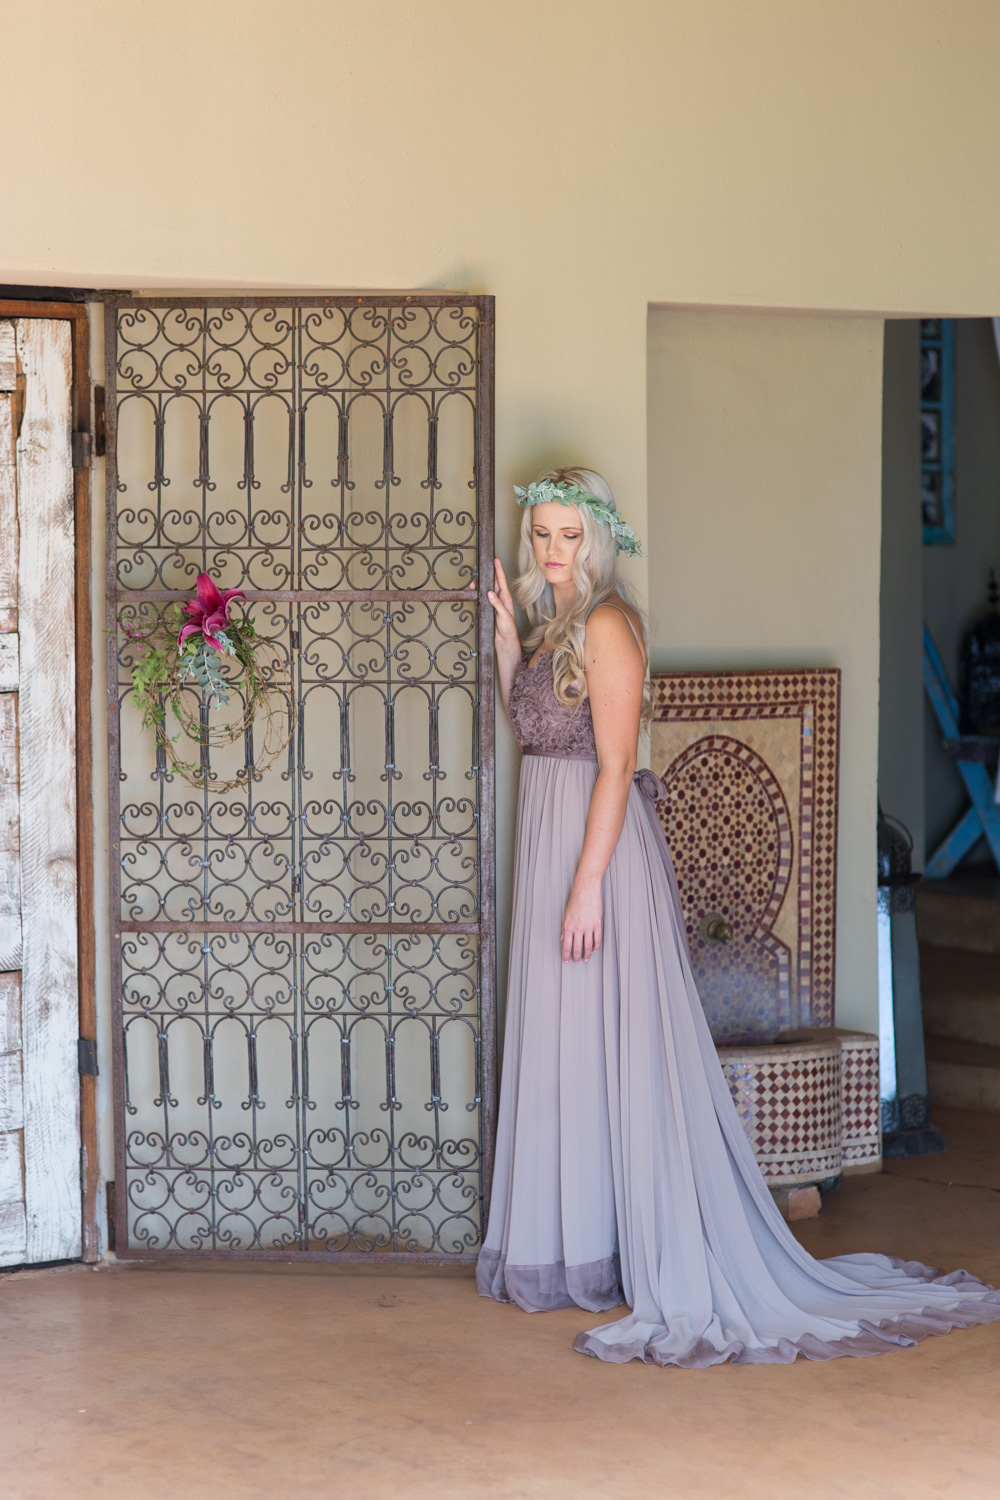 Shokran pretoria wedding venue shoot014.jpg